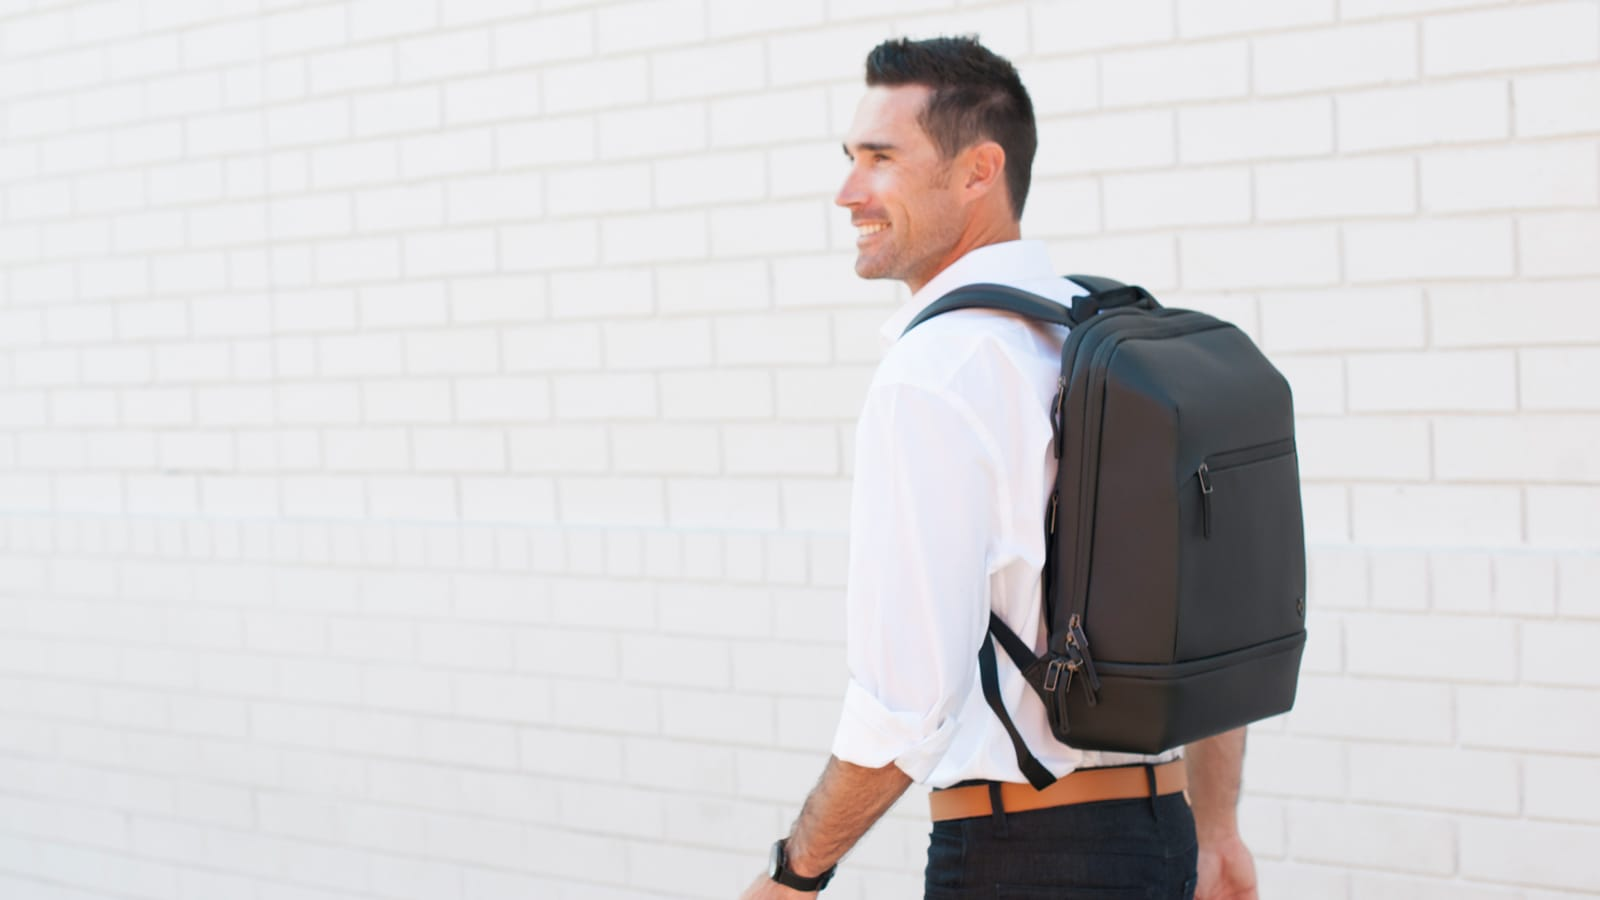 VESSEL Signature 2.0 laptop backpack is impressively durable and weather resistant